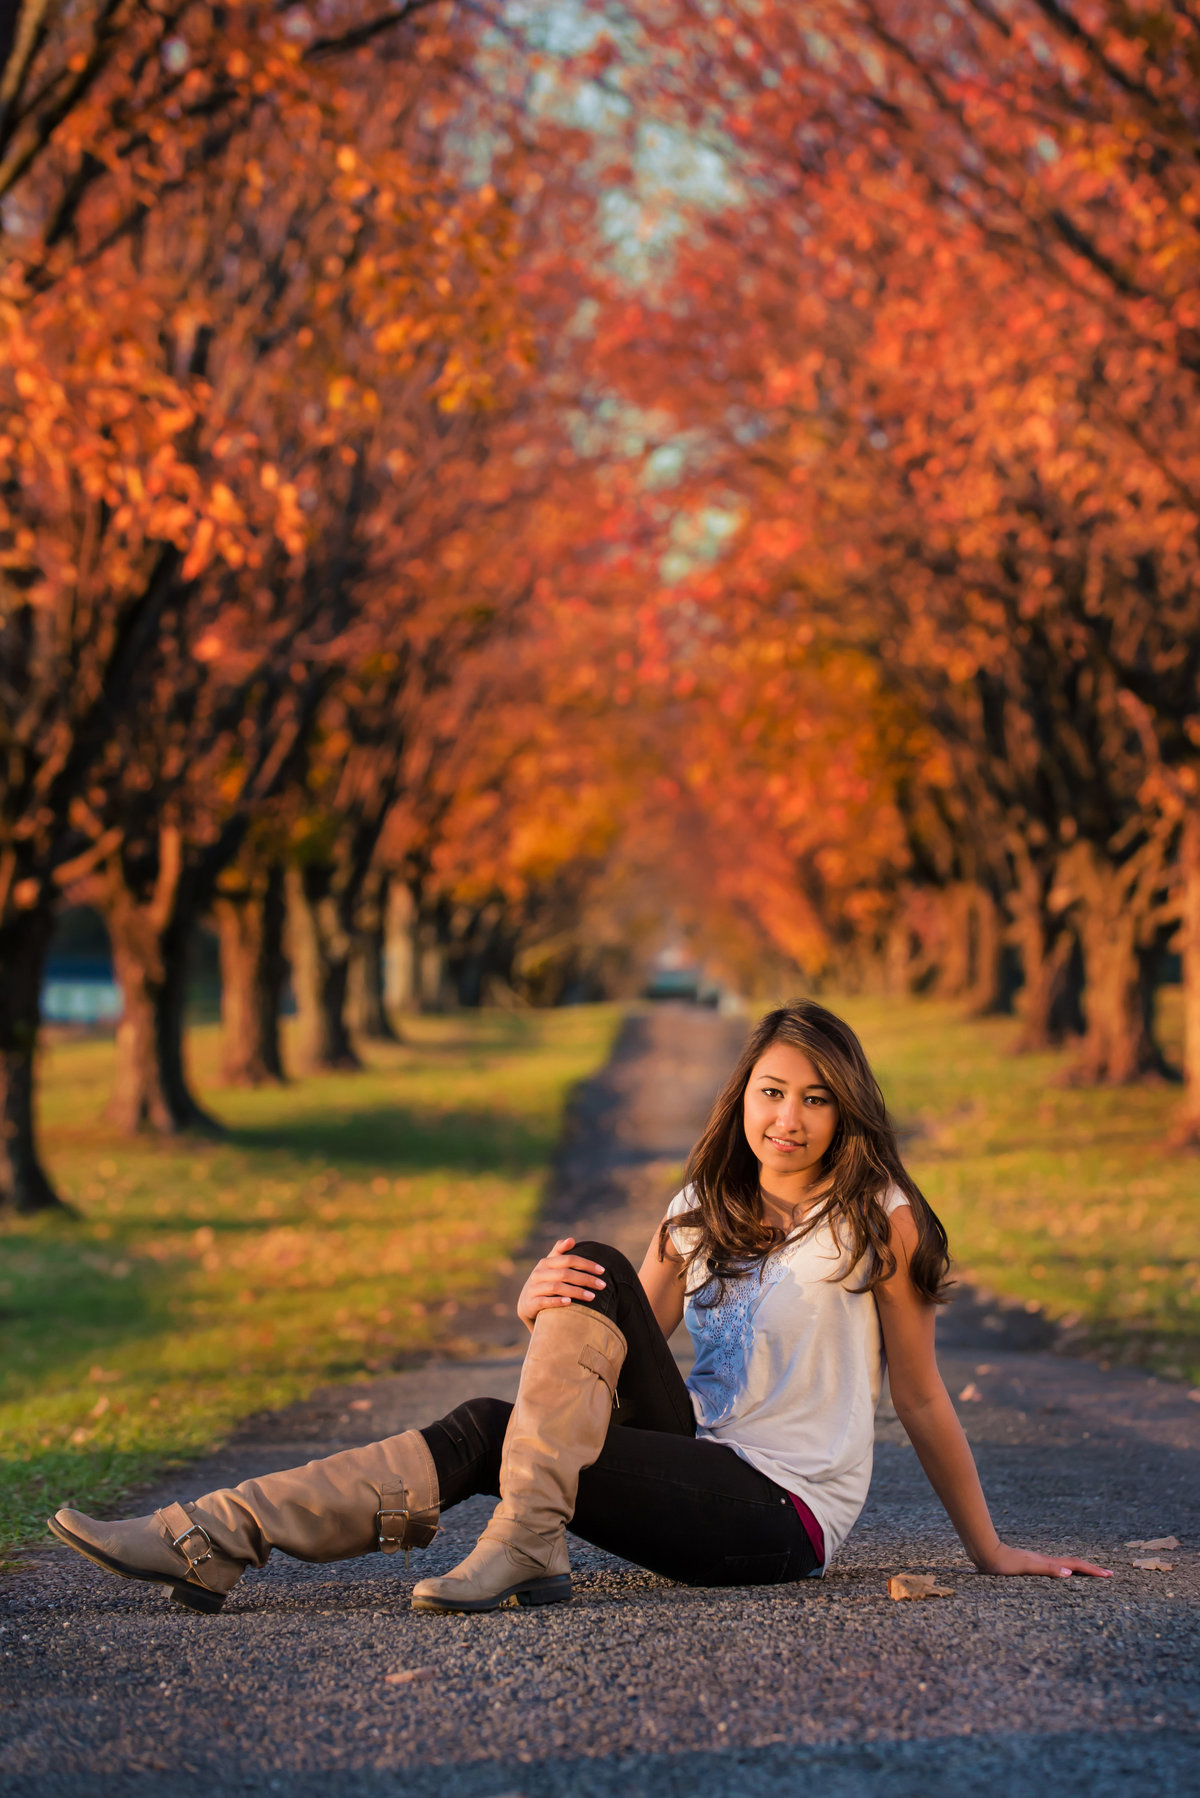 Fall in Baltimore is the perfect time to take your 2017/2018 senior portraits